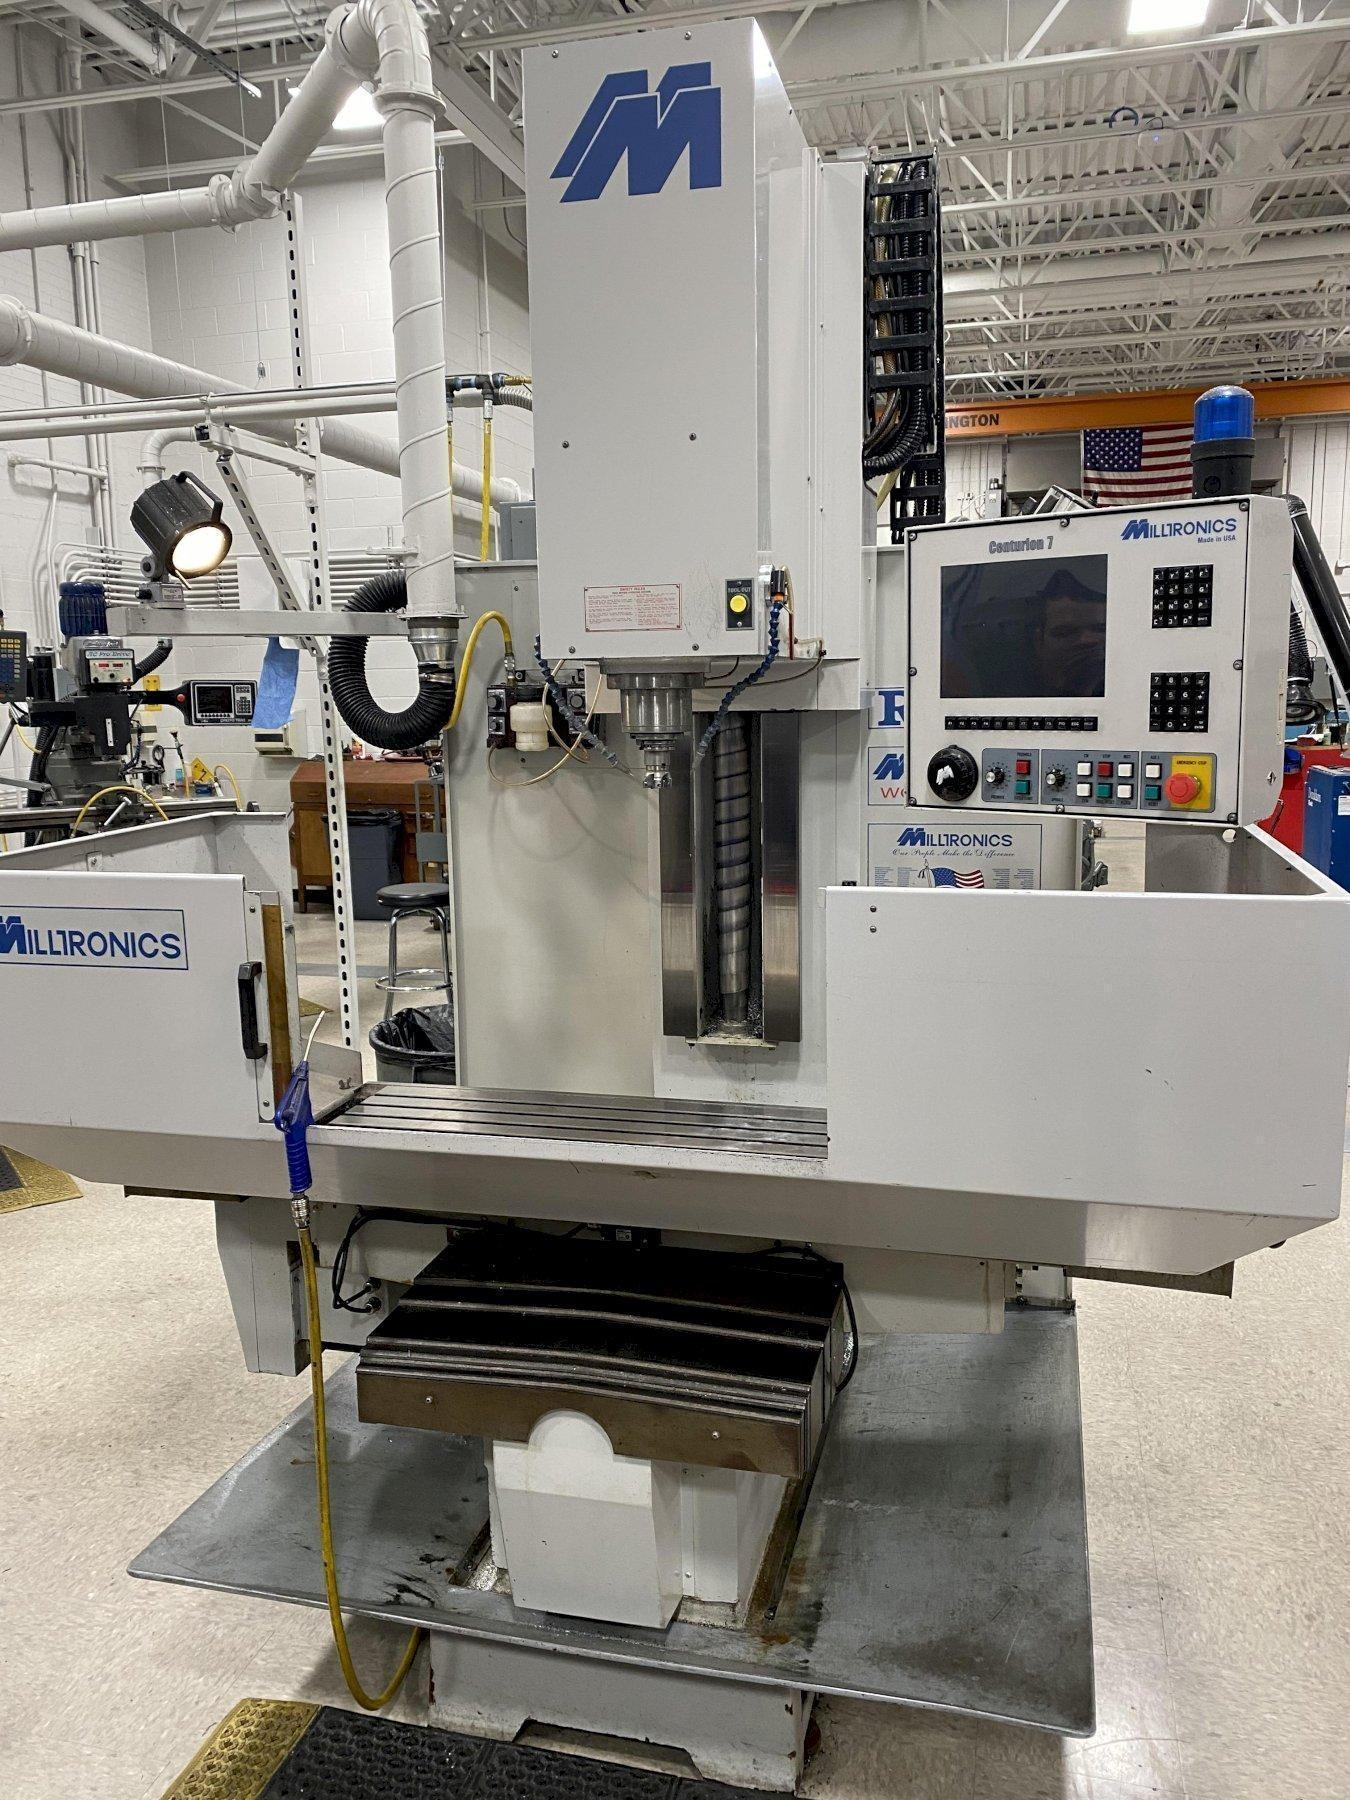 Milltronics Model RH20 CNC 3-Axis Rigid Head Bed Mill, New 2004.